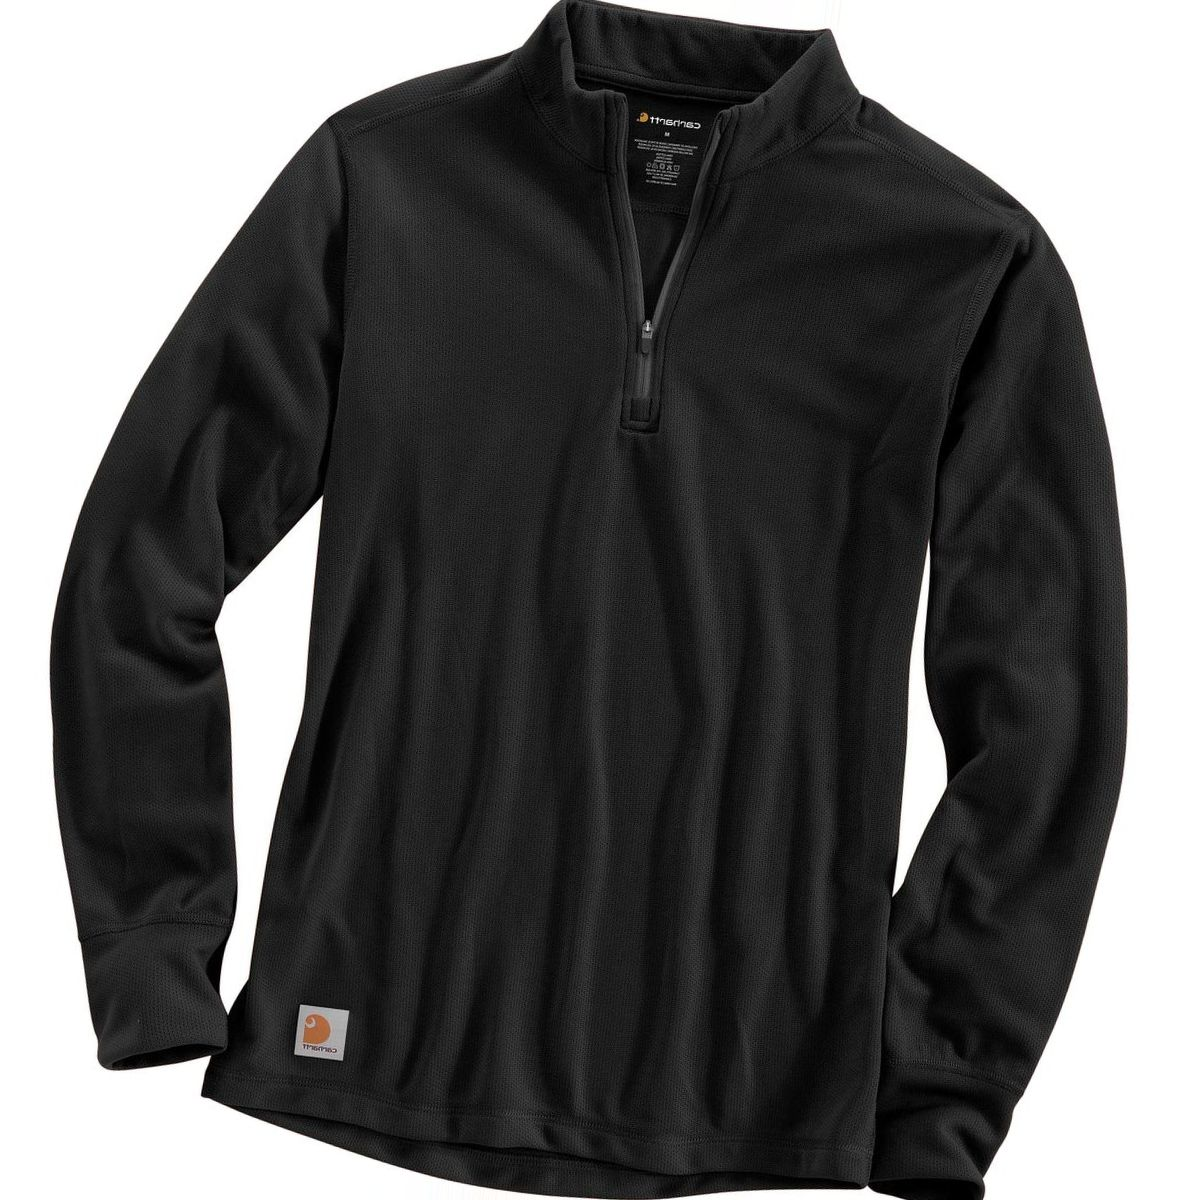 Carhartt Base Force Extremes Cold Weather 1/4-Zip Top - Men's